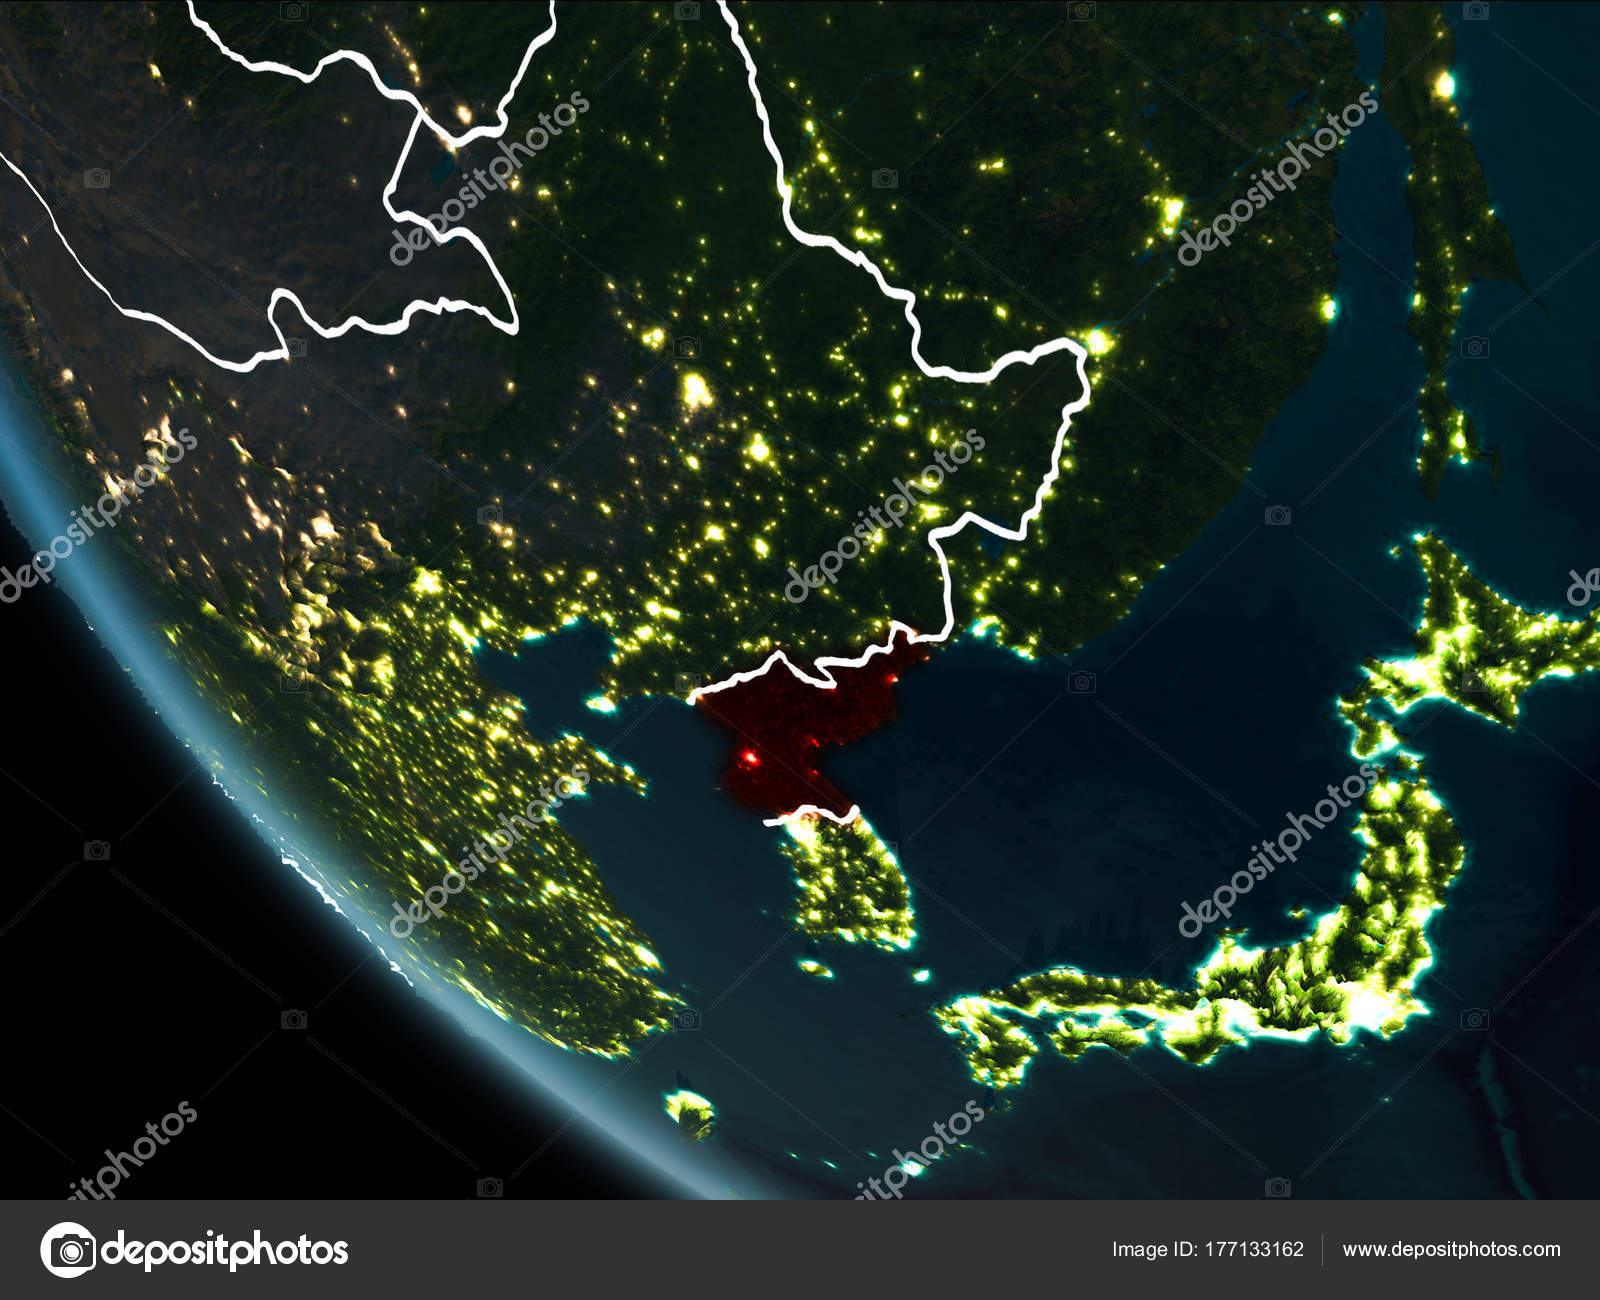 Satellite view of north korea at night stock photo tomiger satellite view of north korea highlighted in red on planet earth at night with borderlines and city lights 3d illustration gumiabroncs Choice Image